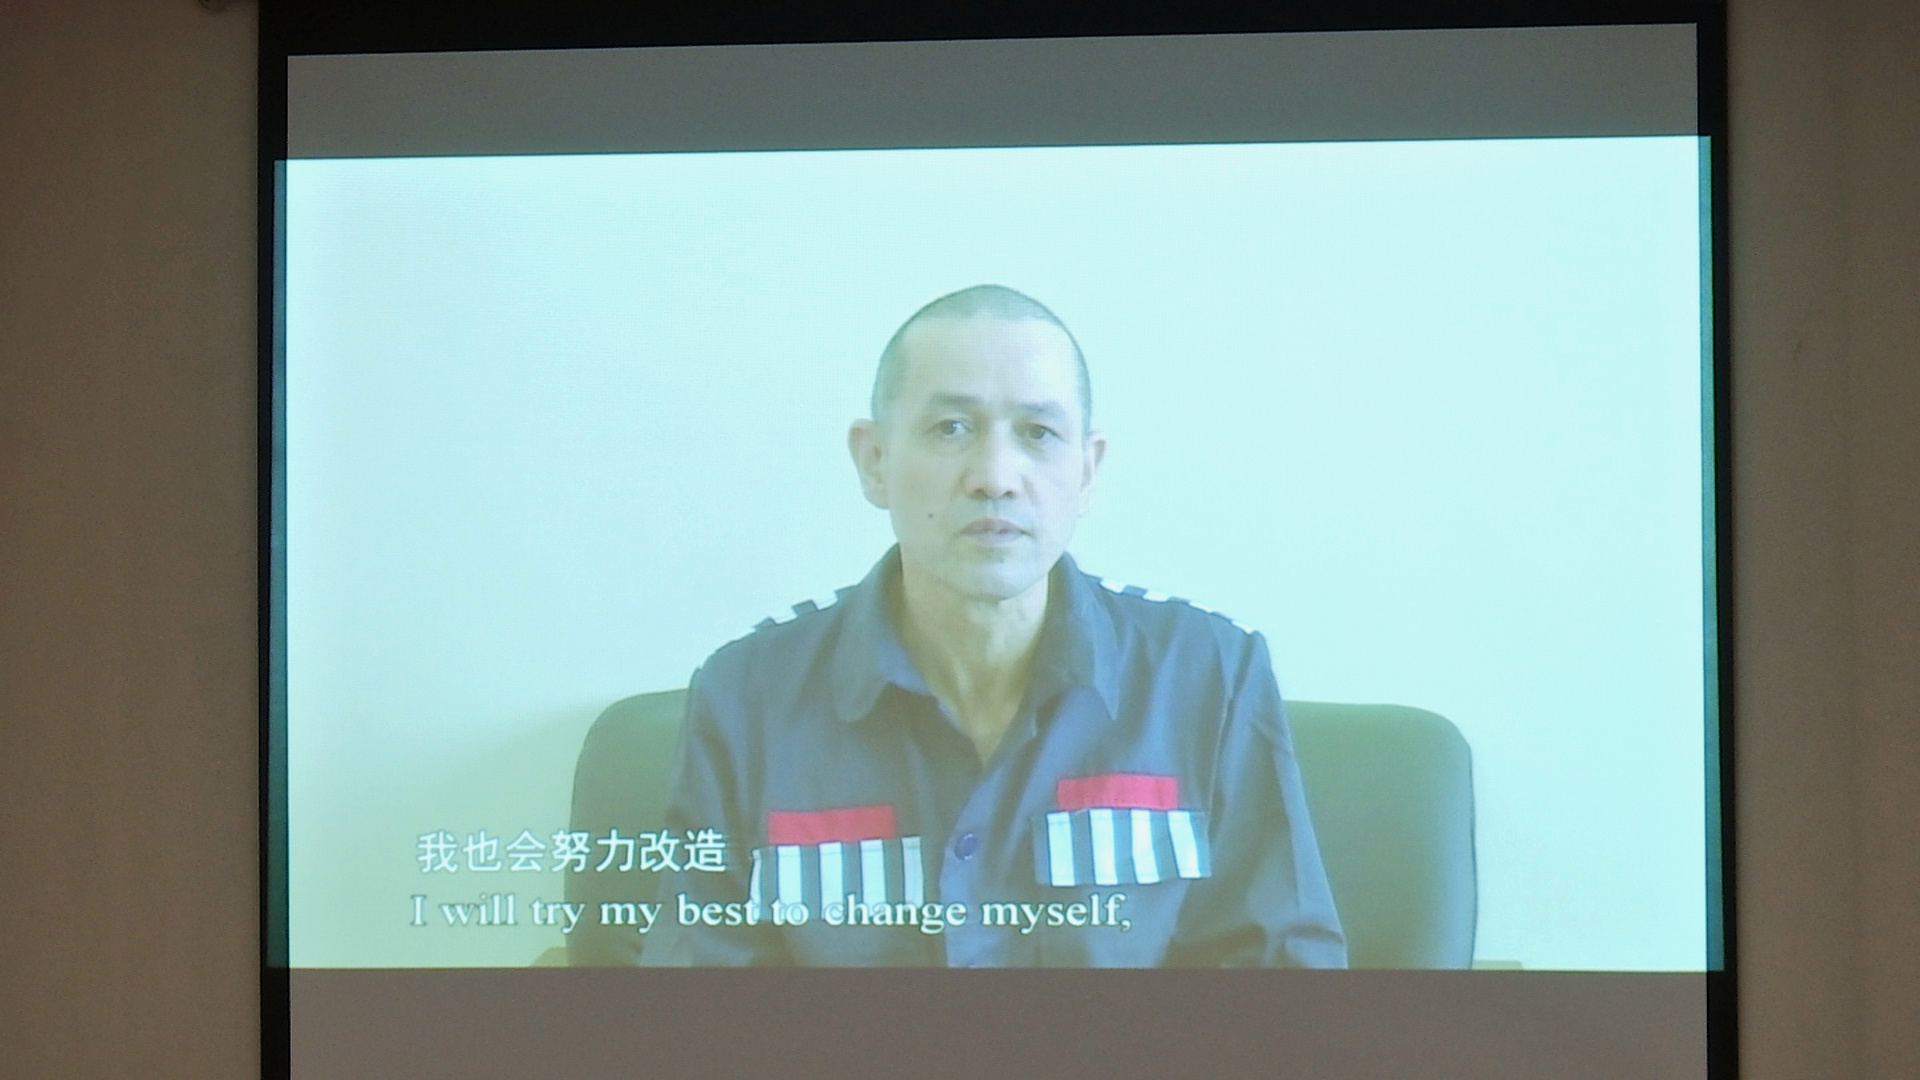 Erkin Tursun, a former TV producer whom officials said is serving a 20-year sentence in Xinjiang, is seen speaking on a video shown at a news conference on Xinjiang-related issues, in Beijing, China April 9, 2021. Reuters TV/via REUTERS